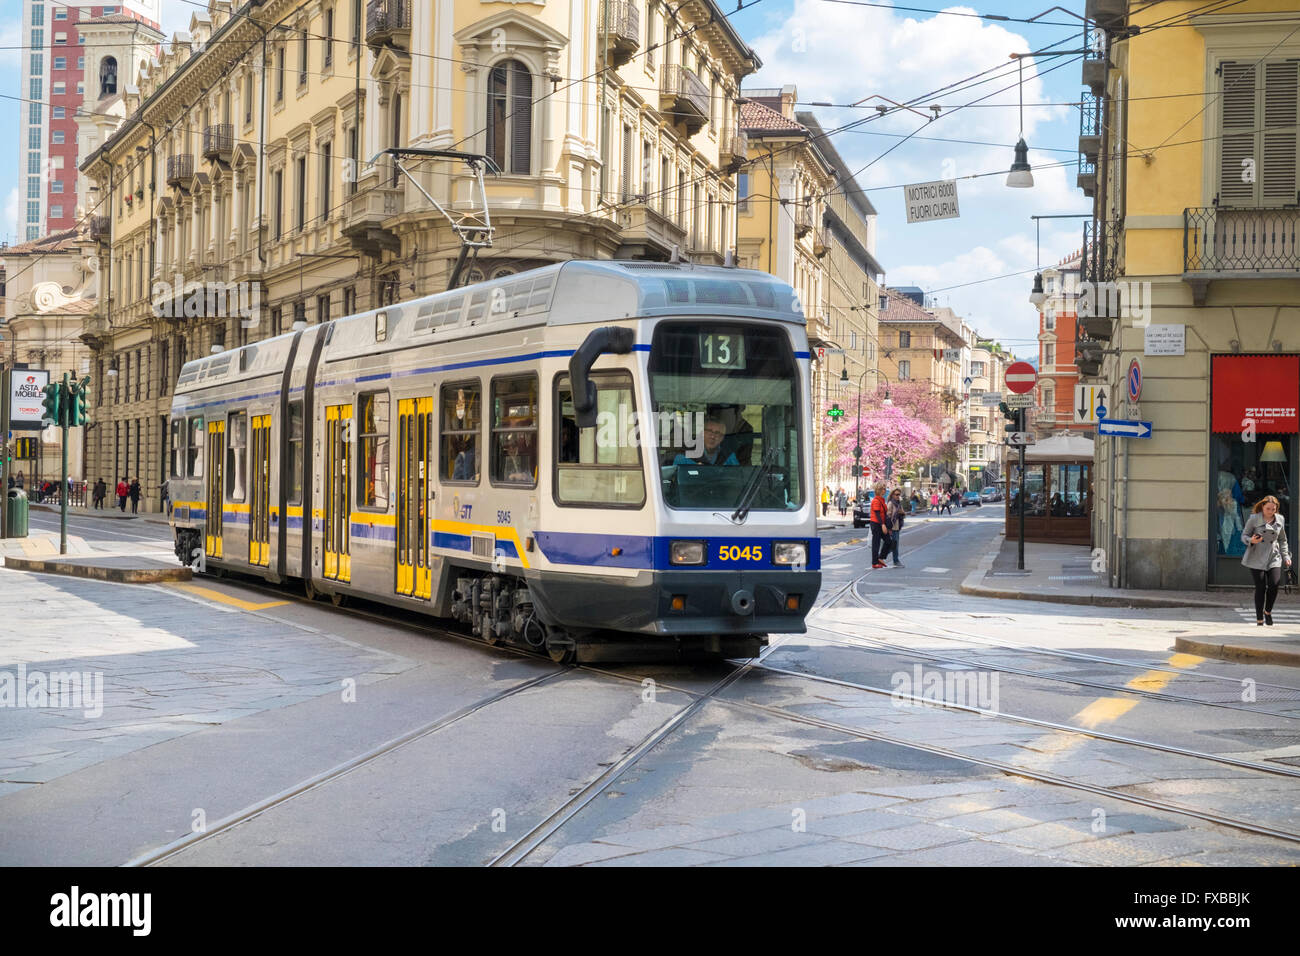 Trams in Turin, Piedmont, Italy - Stock Image